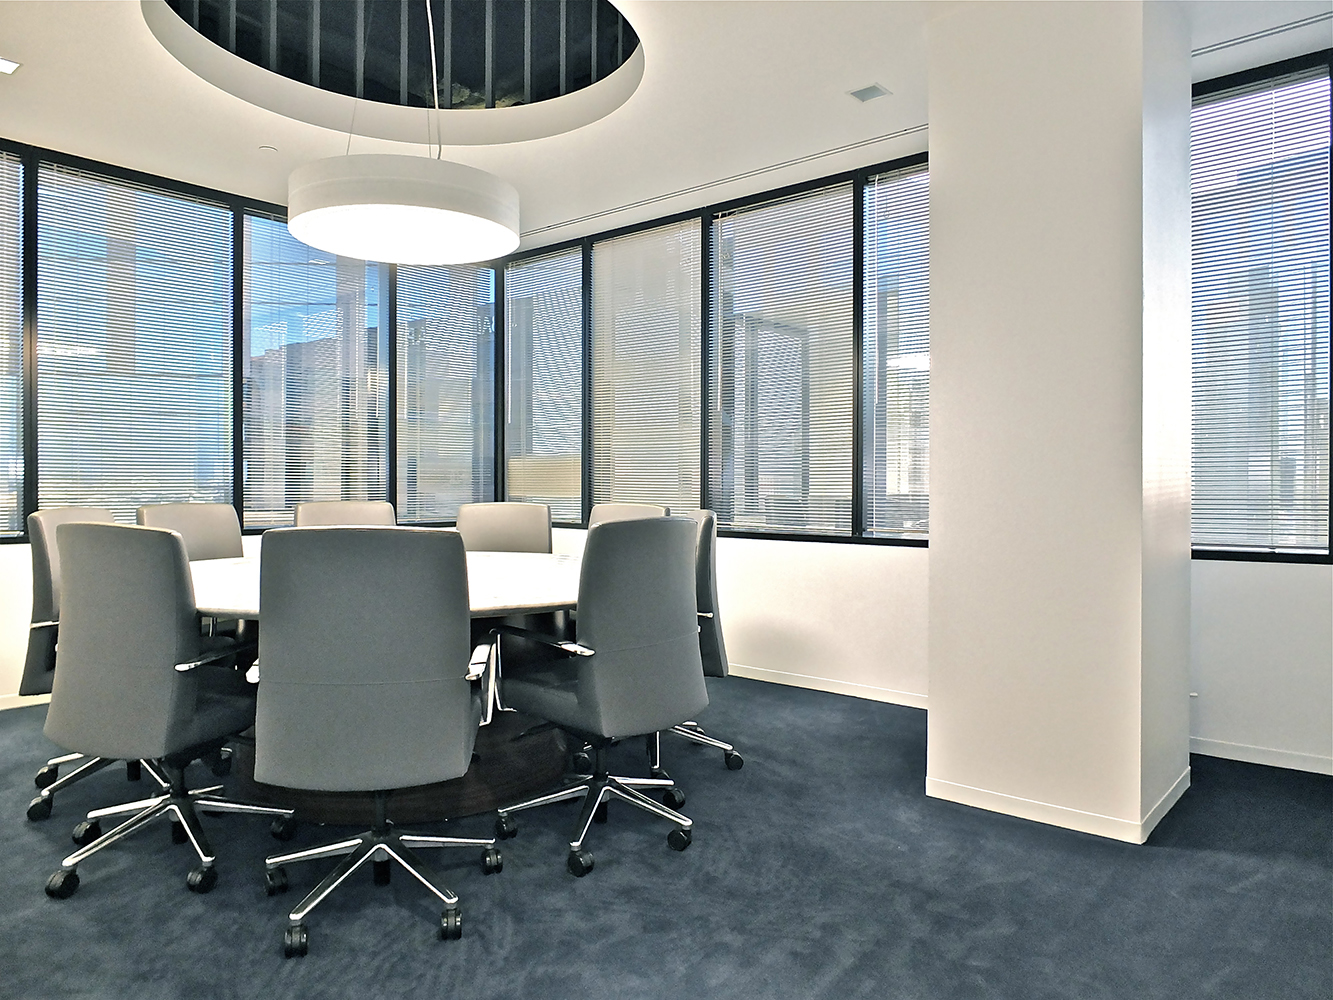 Omnience office lighting fixtures are perfect for conference tables, seen here above a small round table near large windows.